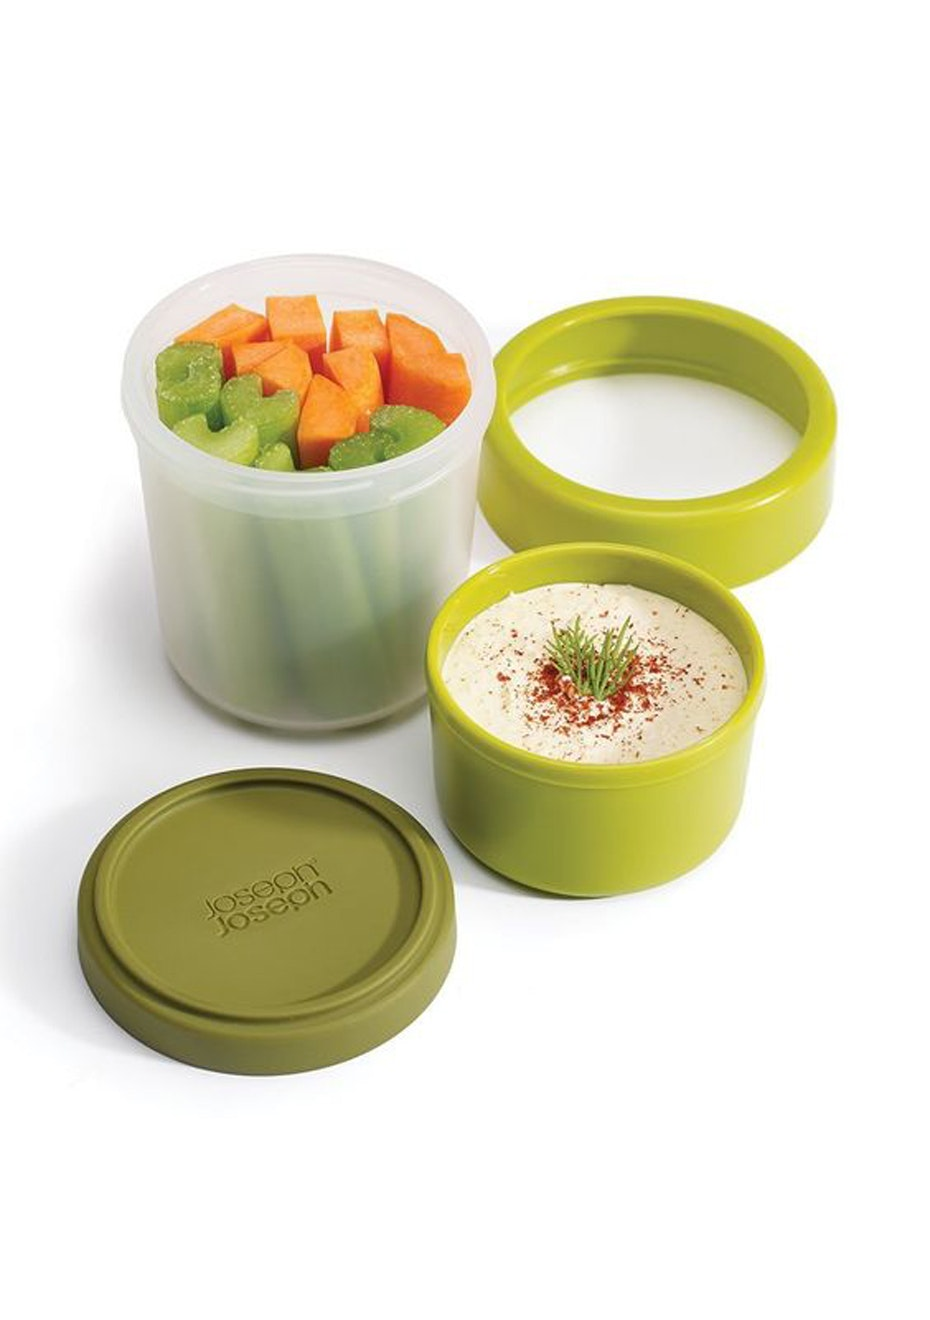 Joseph Joseph - GoEat Compact 2-in-1 snack pot - Green